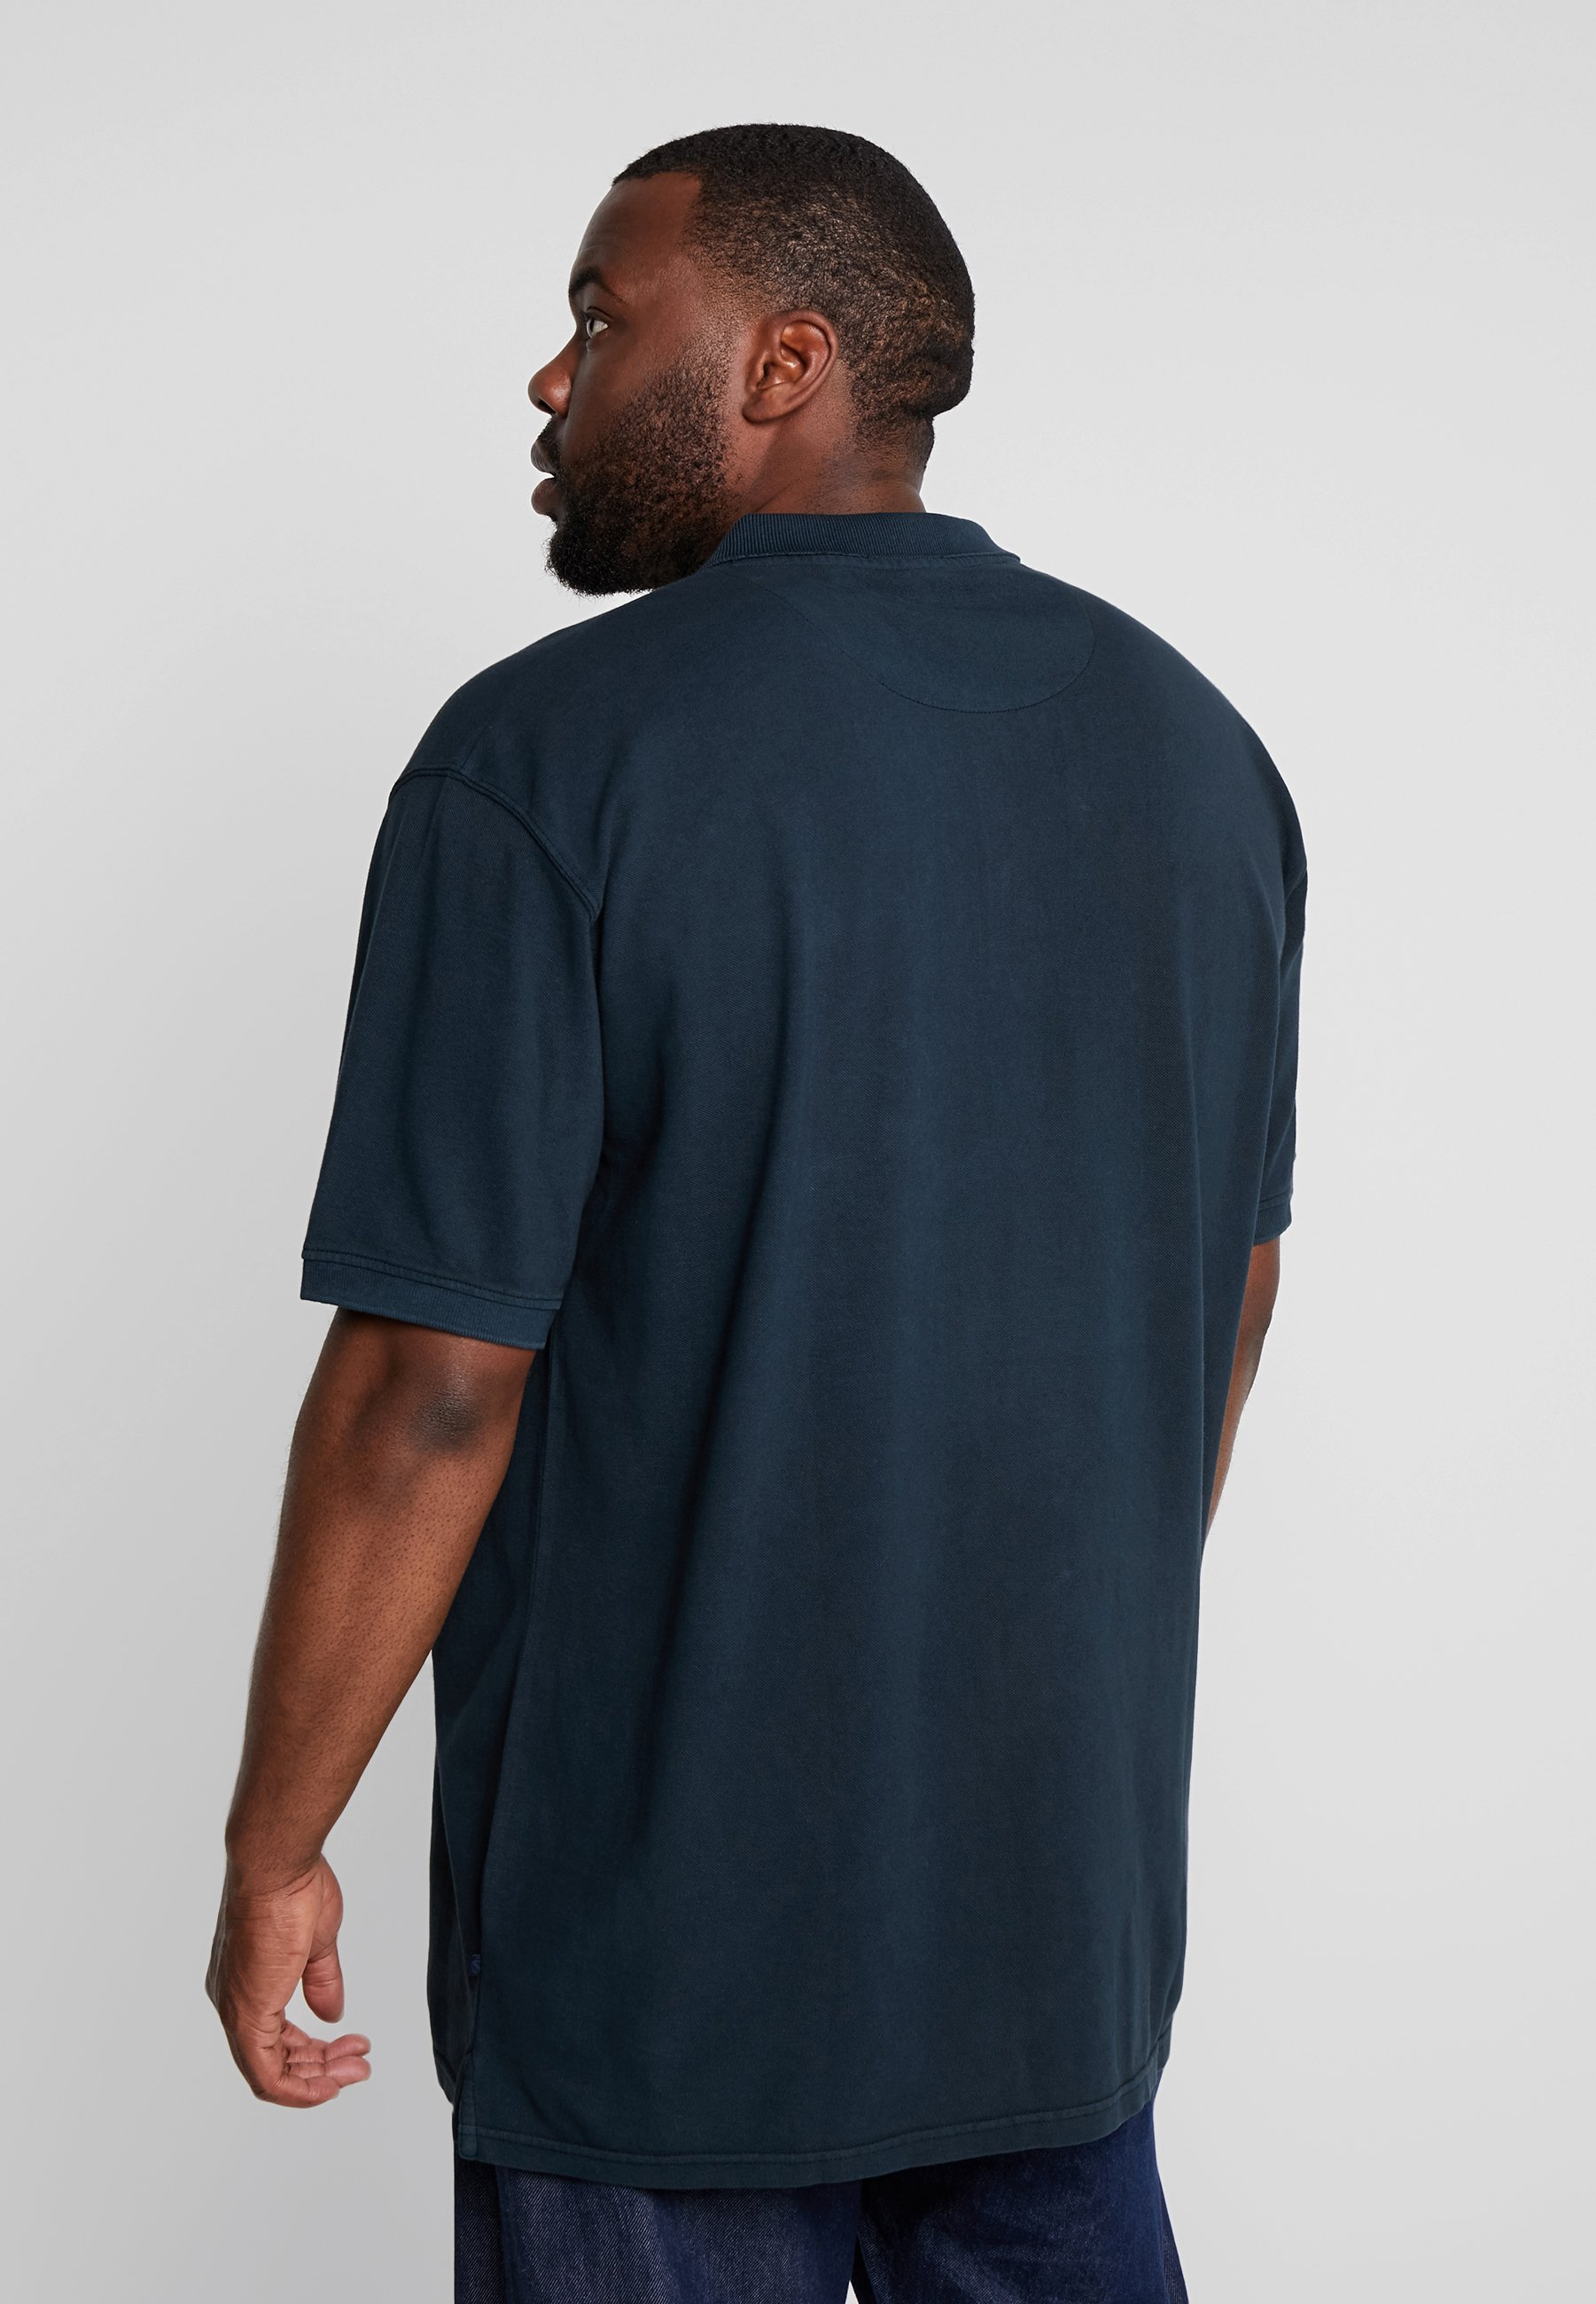 Dyed Sportswear And Jack´s Washed OutPolo Navy 0wvOmN8n